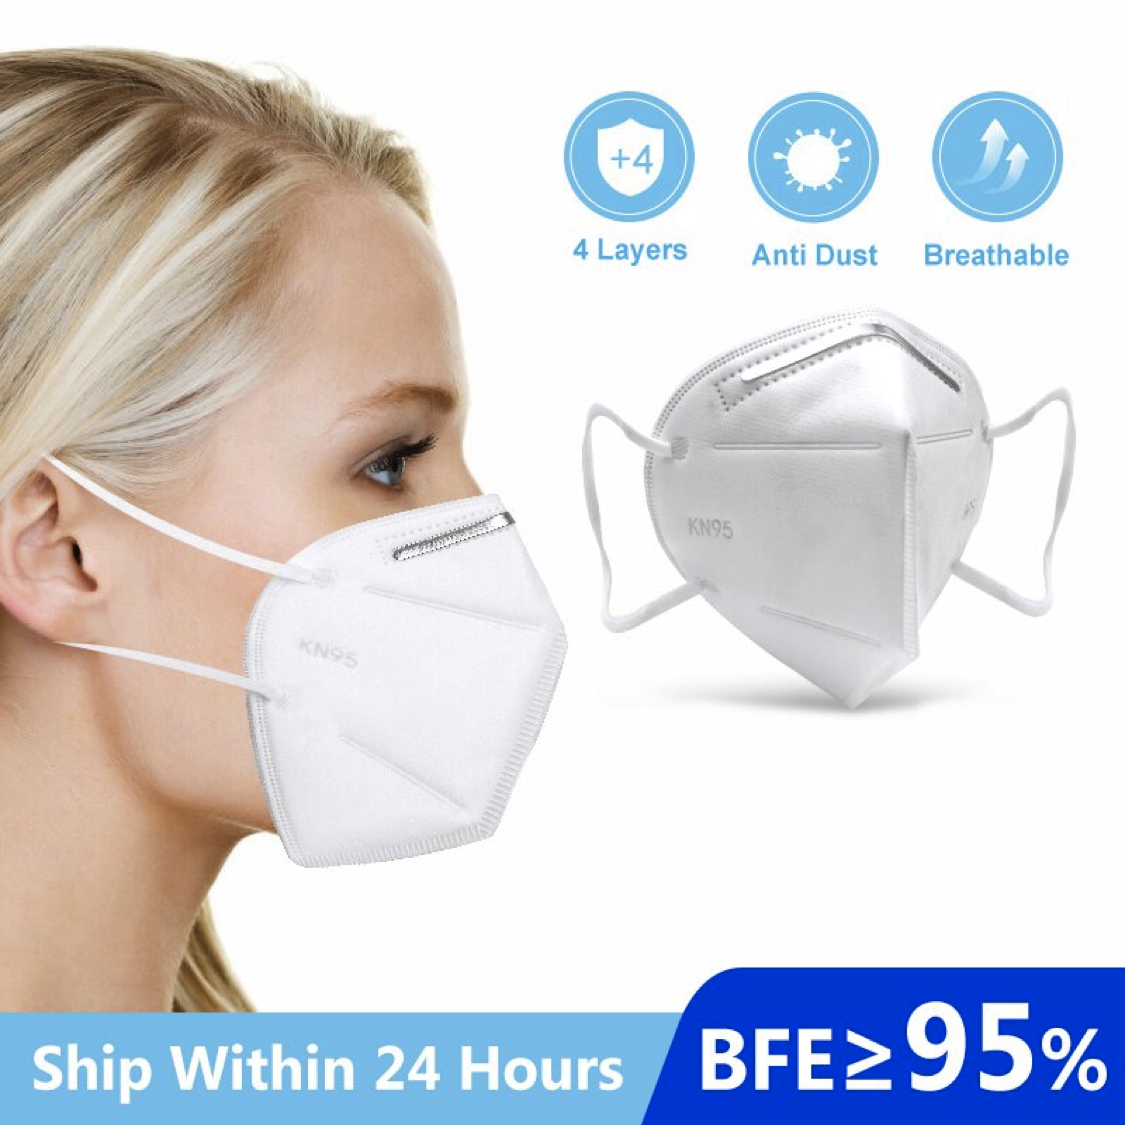 Disposable KN95 Face Masks with BFE≥95% (Available in packs of 10, 20, 30, 40 & 50)